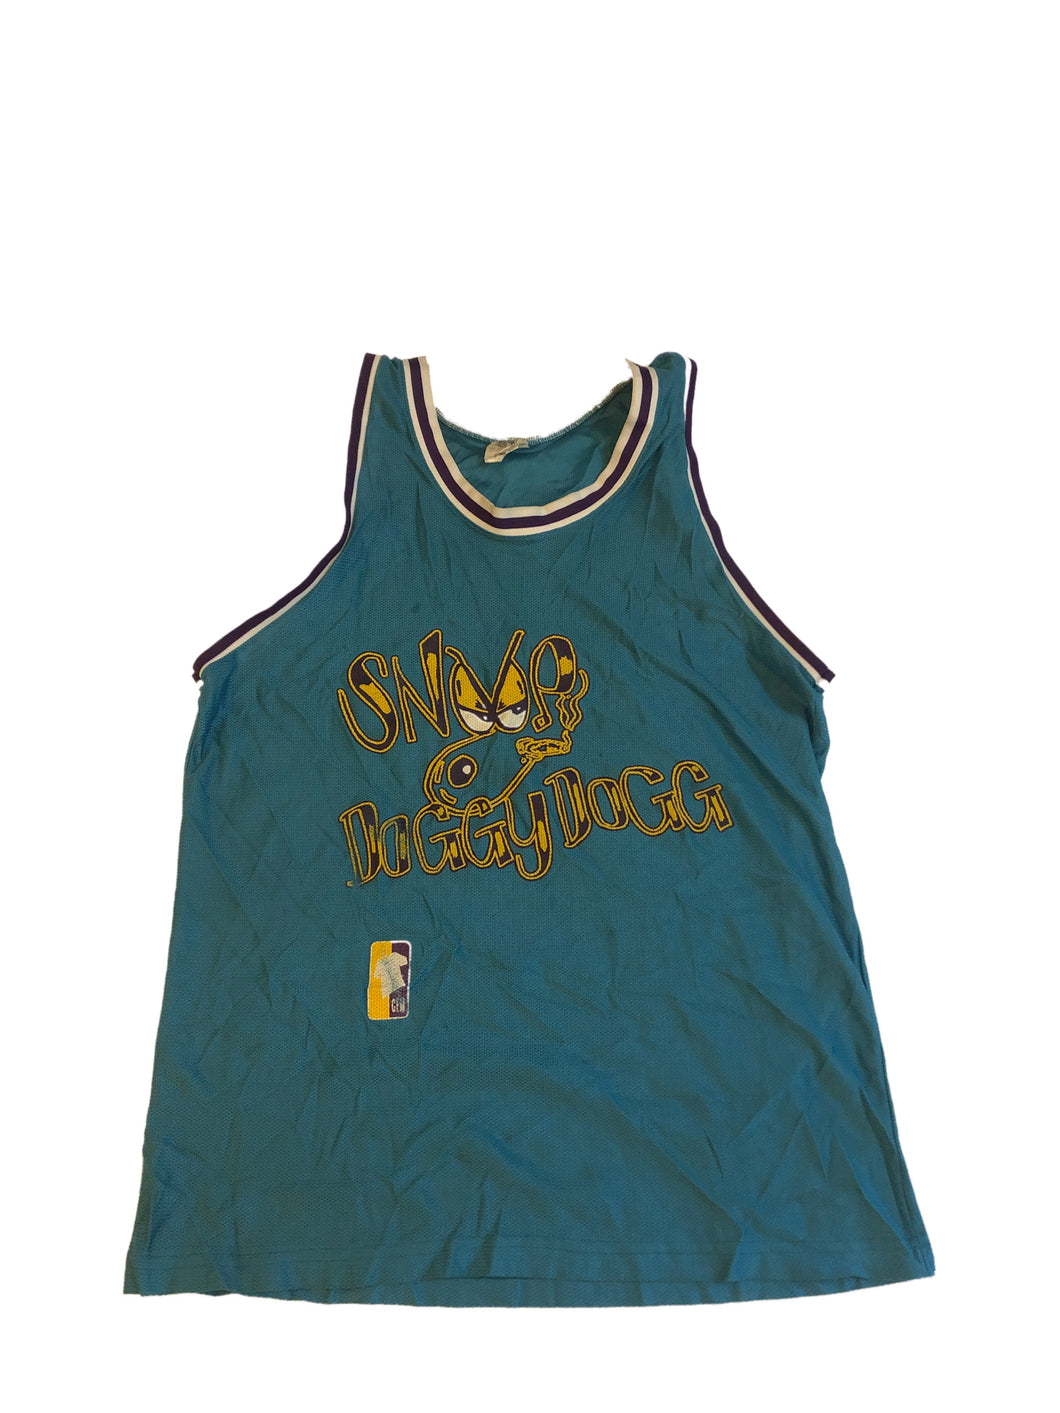 Snoop Dogg Basketball Jersey